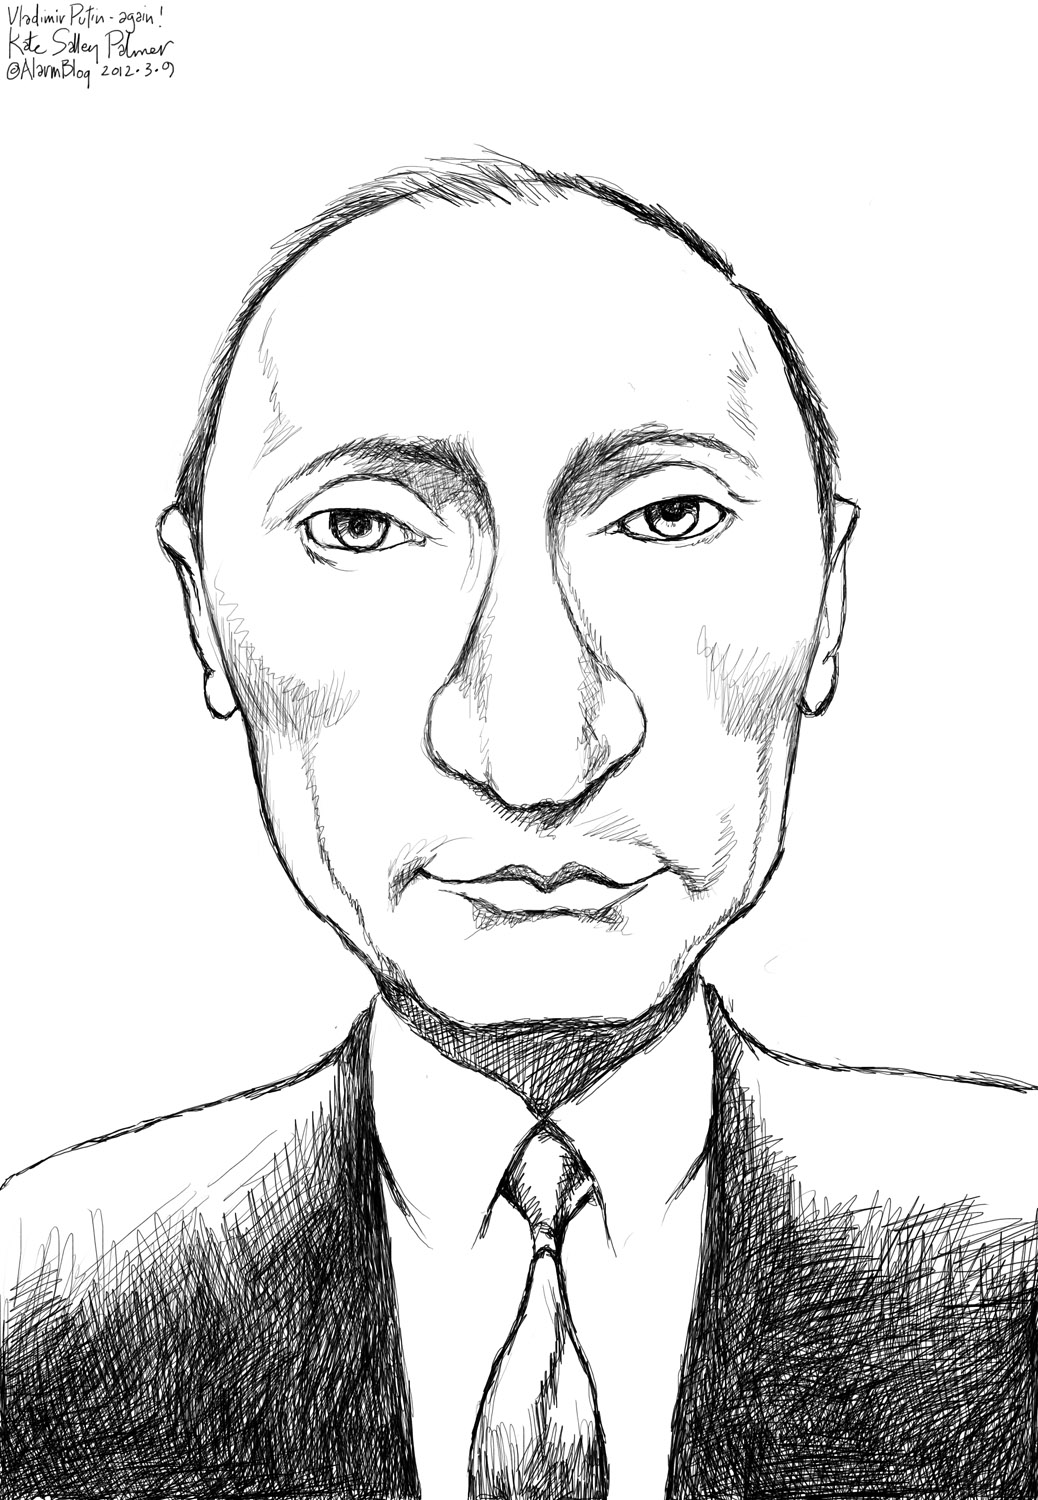 Drawn by Vladimir Putin appeared on the cover of New Yorker 03/06/2017 13